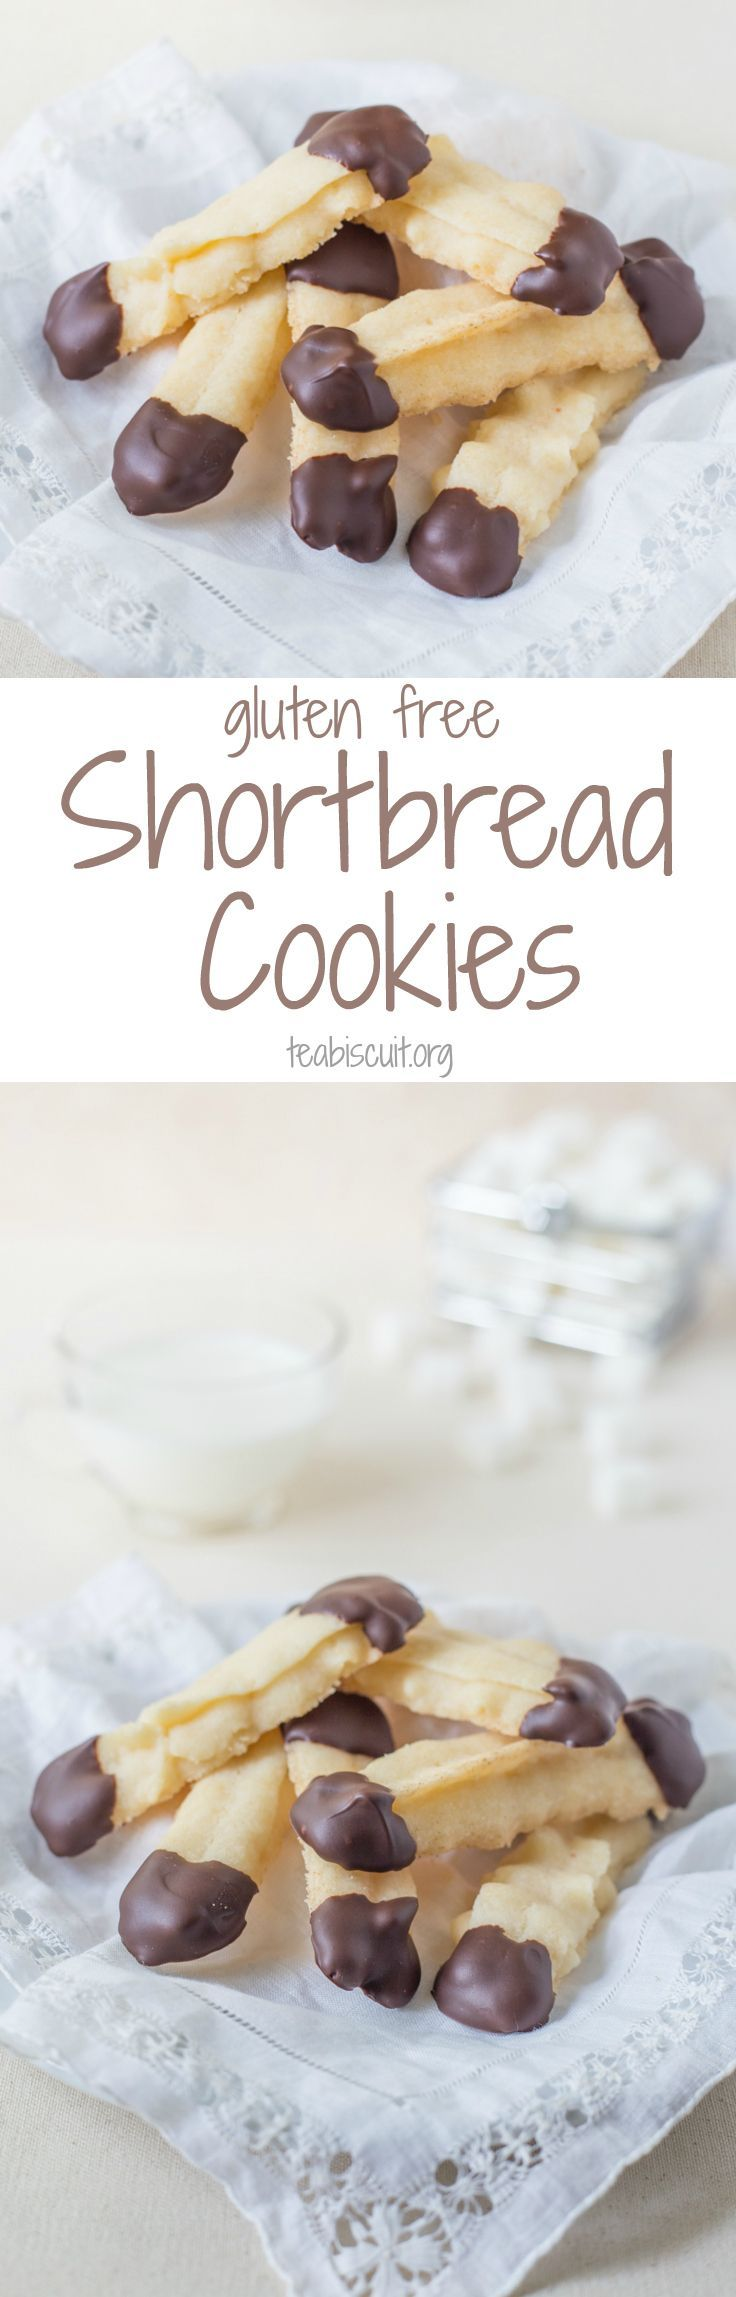 The PERFECT Gluten Free Shortbread Cookie! It's delicious, vegan, easy and dipped in Chocolate! Contains no eggs, gluten, dairy, soy or nuts!   teabiscuit.org